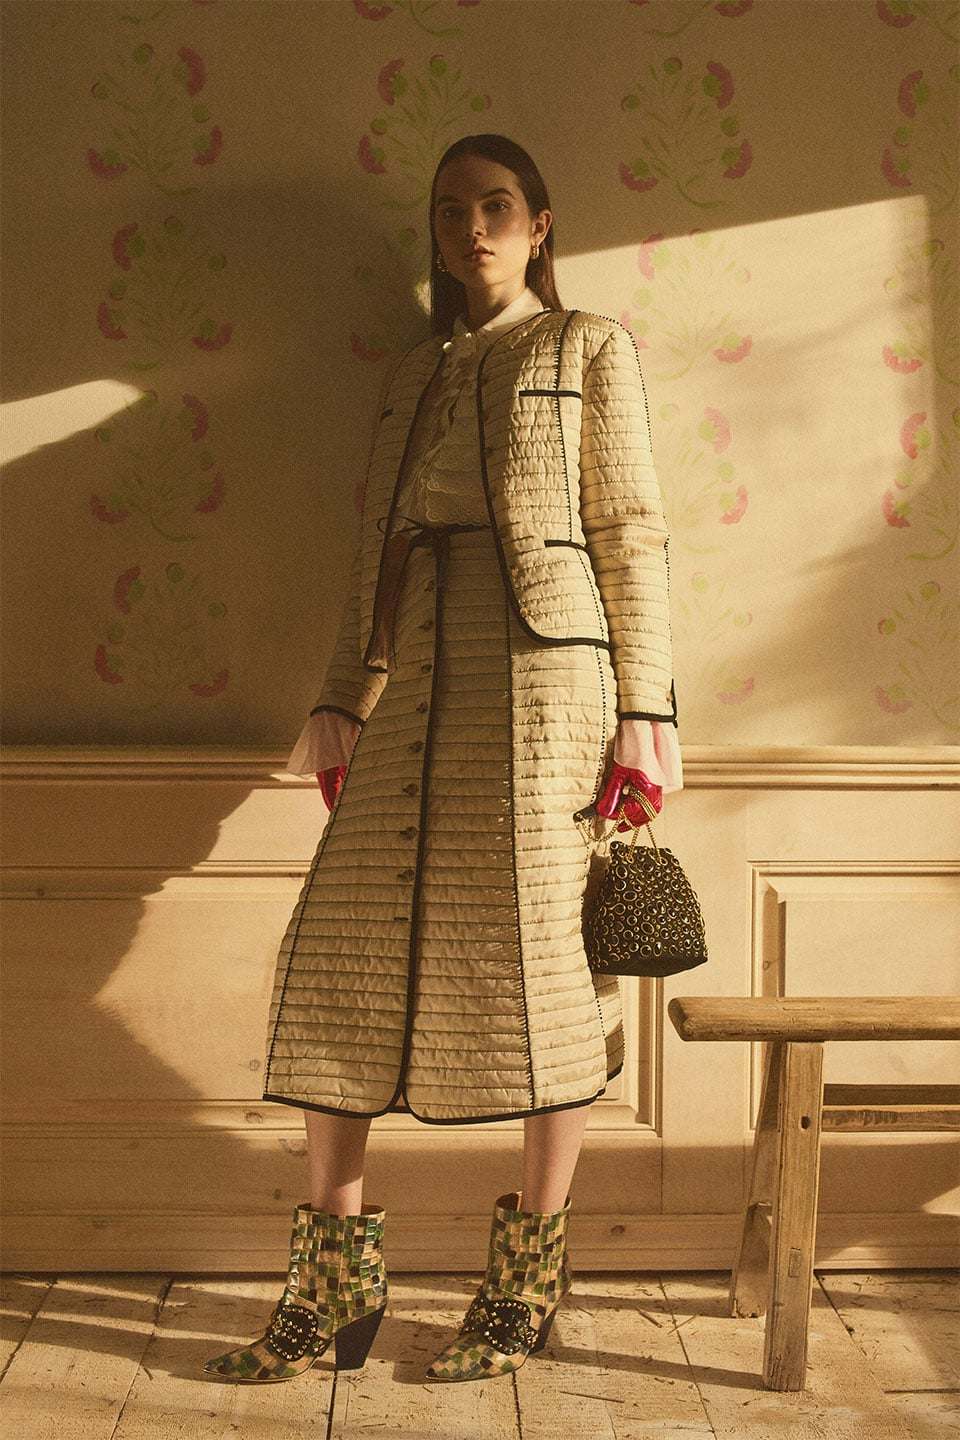 model in quilted suit jacket and midi skirt with white blouse, handbag, and booties.